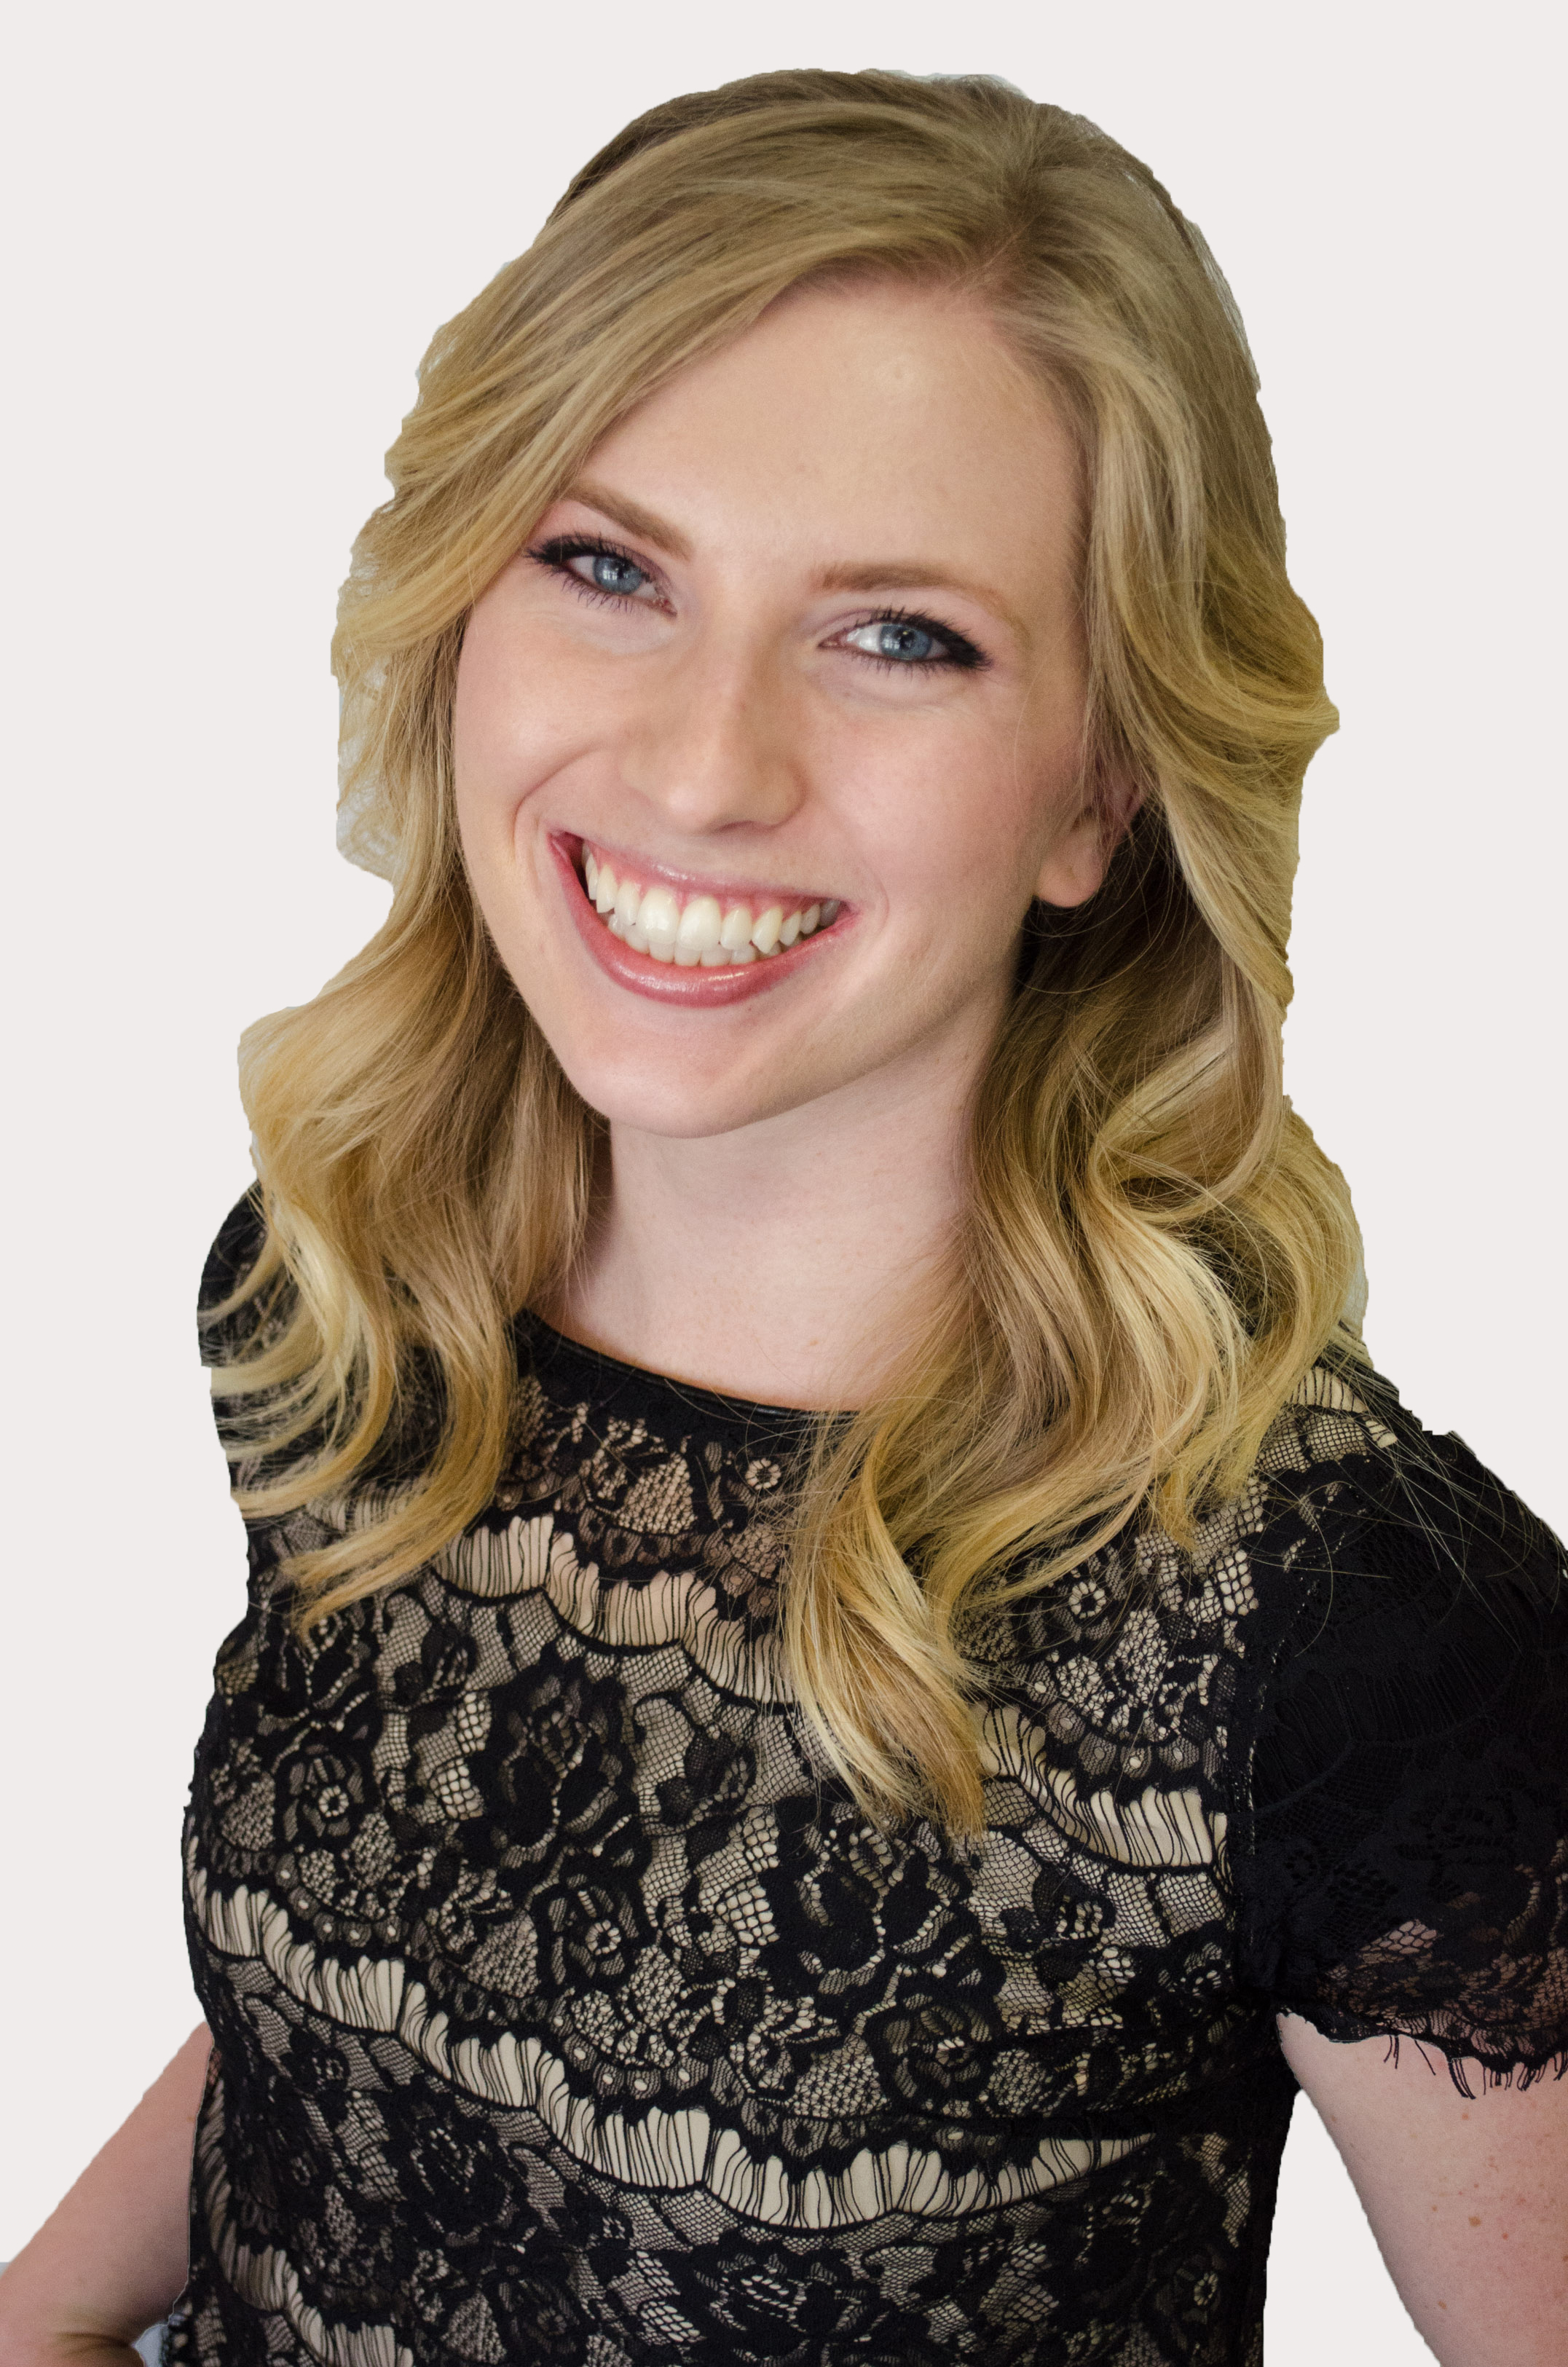 Breanne Miller - Breanne started working at Kellie and Company in 2012. In May 2016 she took ownership of the salon with the vision to make the salon the premier destination to receive salon and day spa services in the Salt Lake Valley. In addition to her cosmetology license, Breanne has earned her Masters of Esthetics license and her BS in Business Management from Southern Utah University. Breanne stays current with the latest industry education and provides education opportunities for the stylists at Kellie and Company. Breanne is passionate about not only making people look their best but helping them feel their best!See Breanne's Work Here!